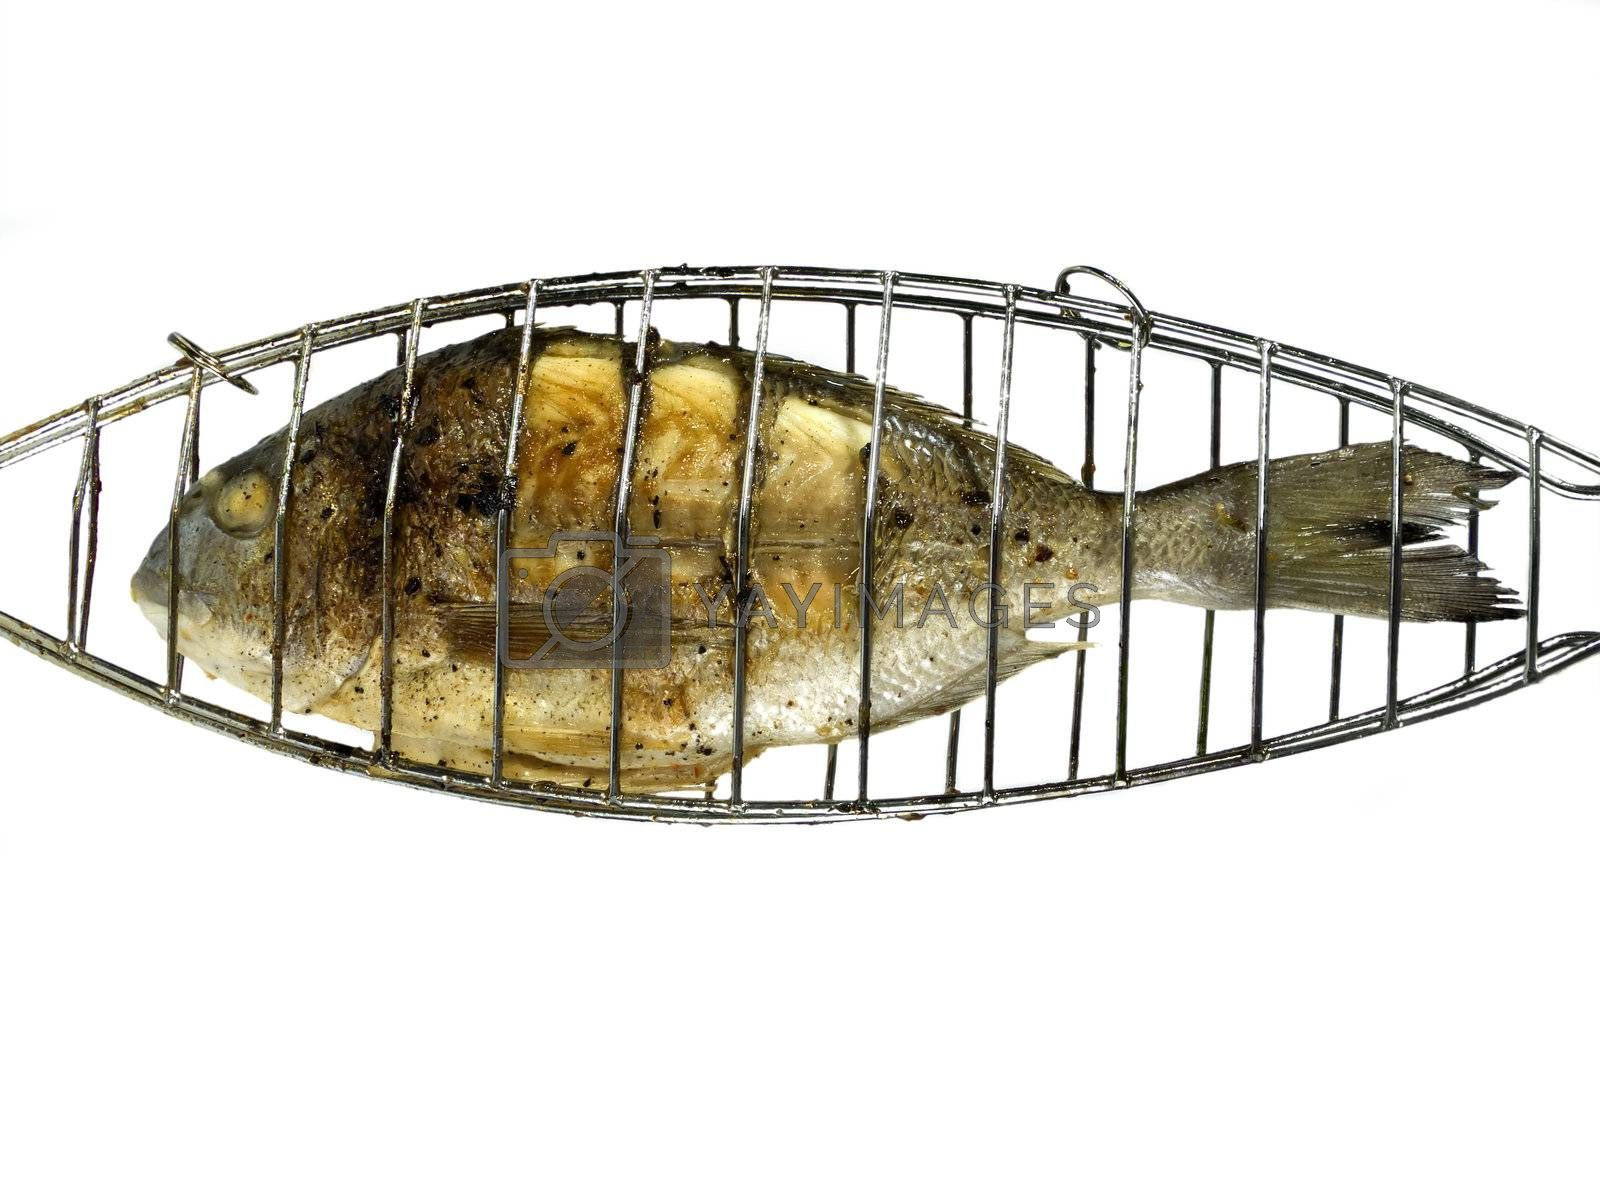 Grilled porgy on white background